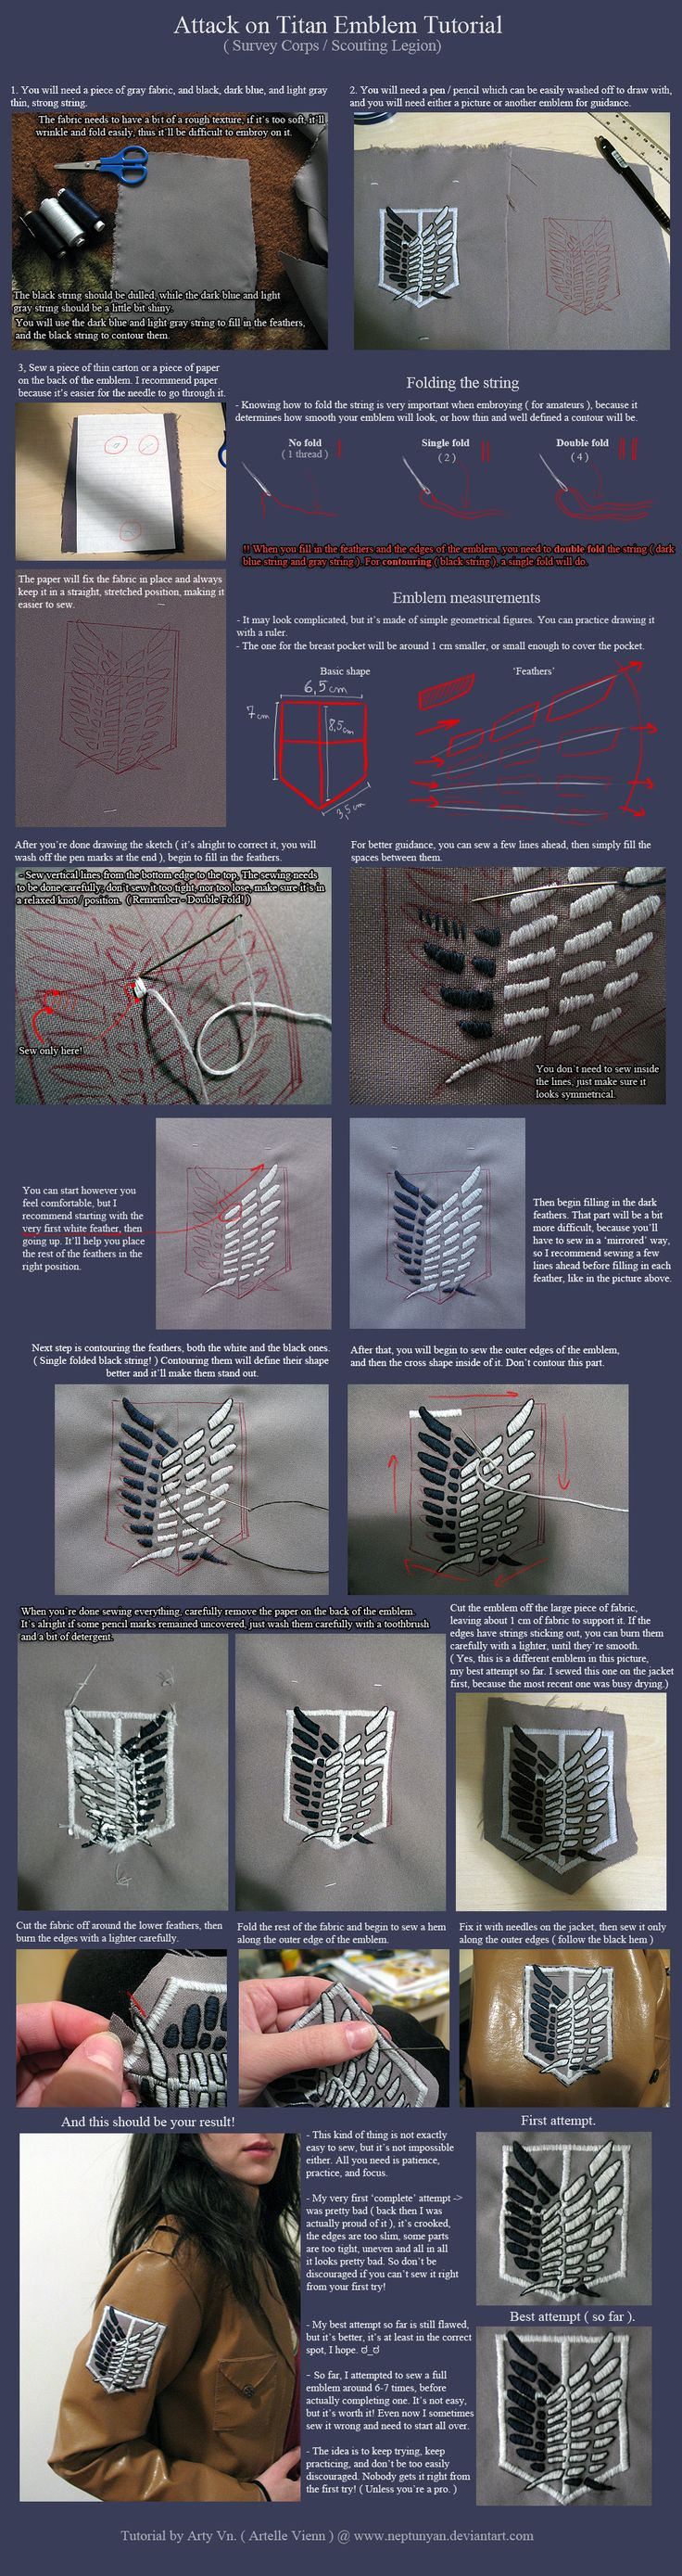 Attack on Titan Emblem Tutorial - Survey Corps. by neptunyan on deviantART - Pinner: I would consider using some stabilizing material (instead of paper) and an embroidery hoop.